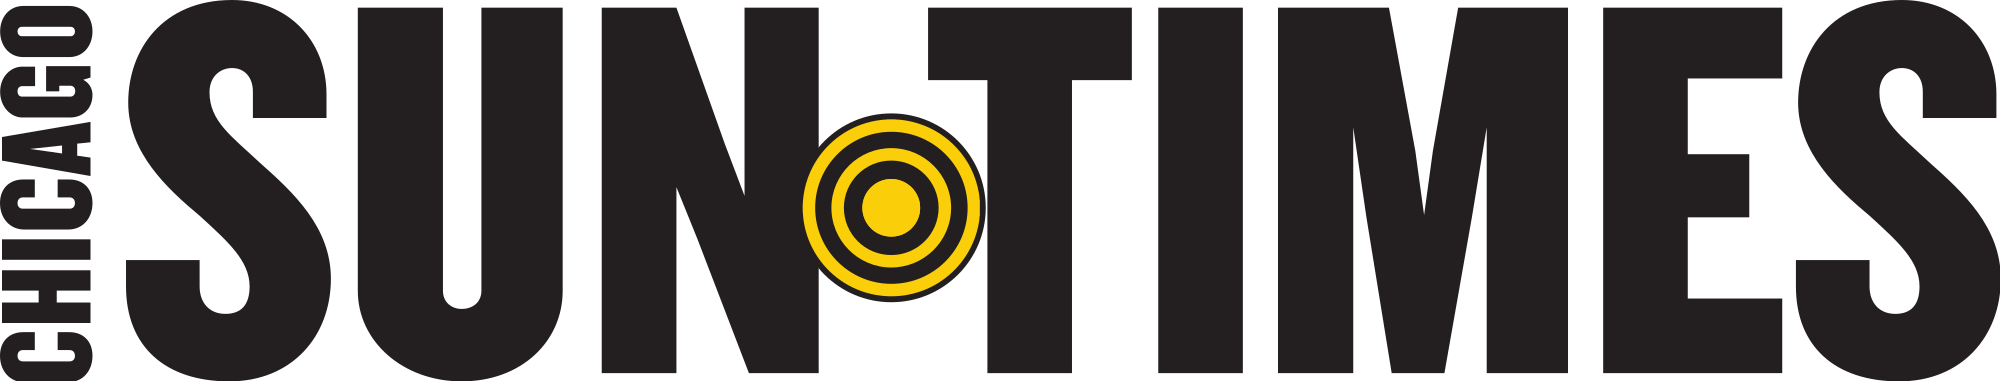 chicago sun times logo png